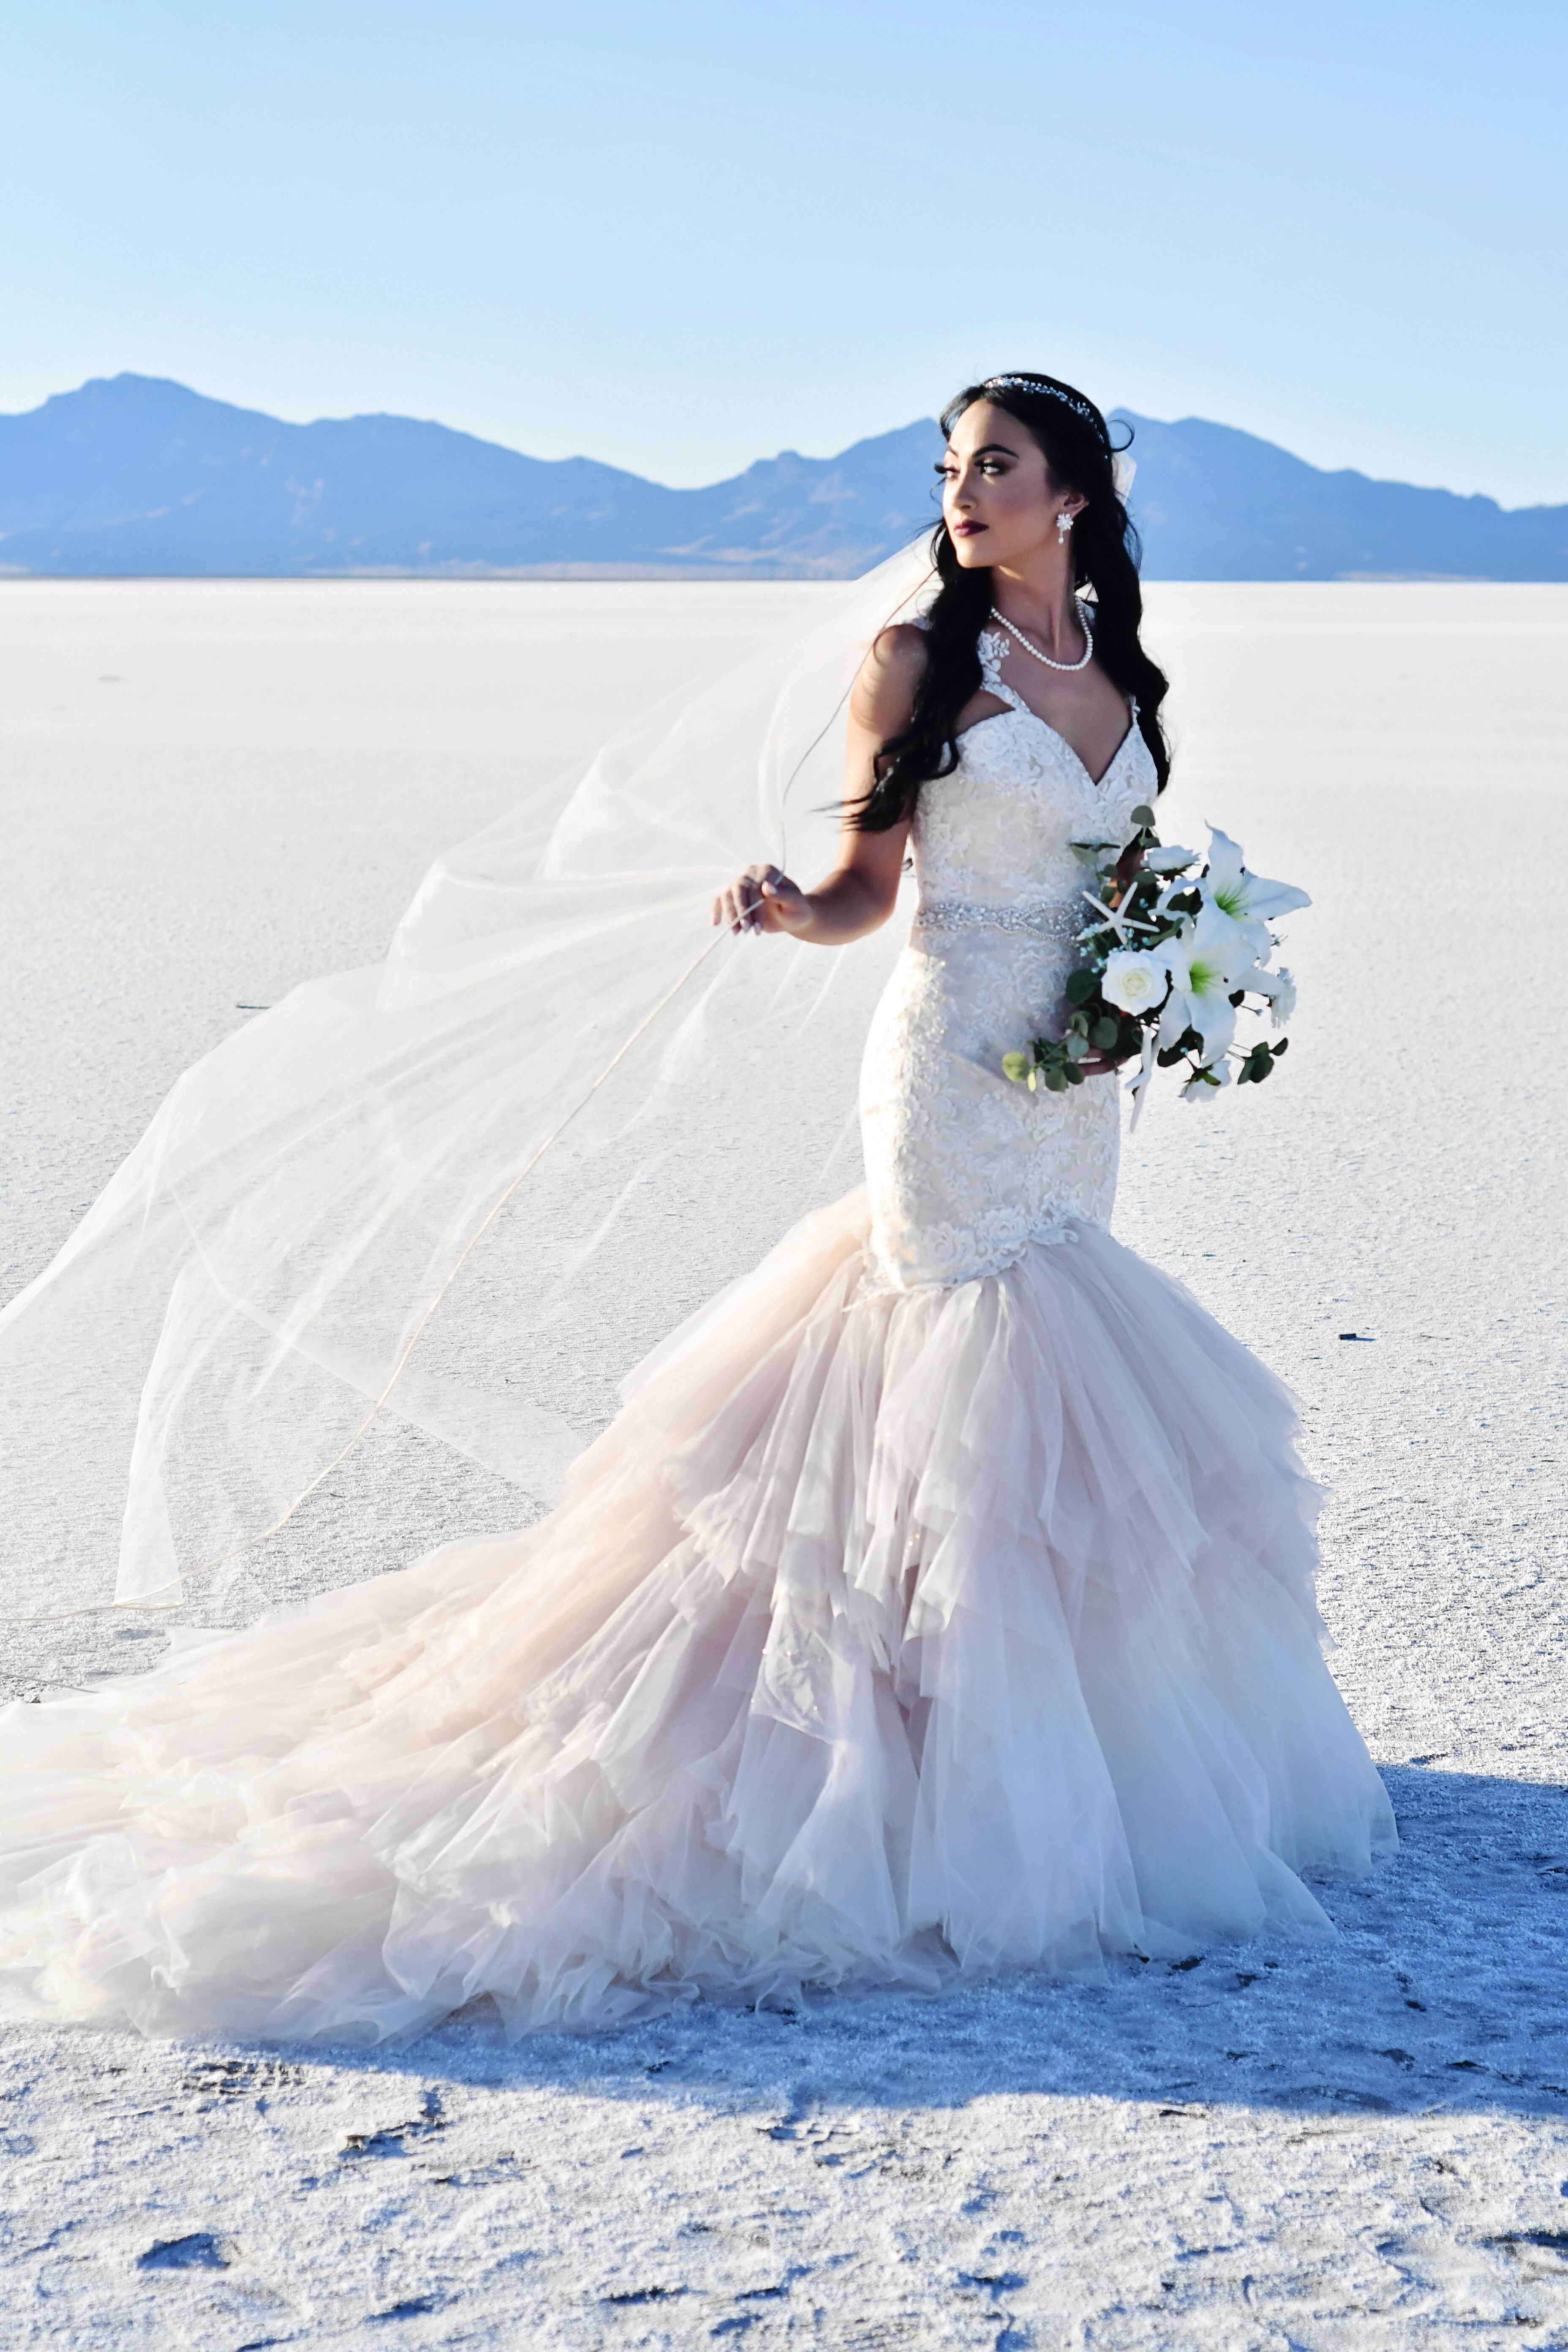 Brunette Bride on Salt Flats